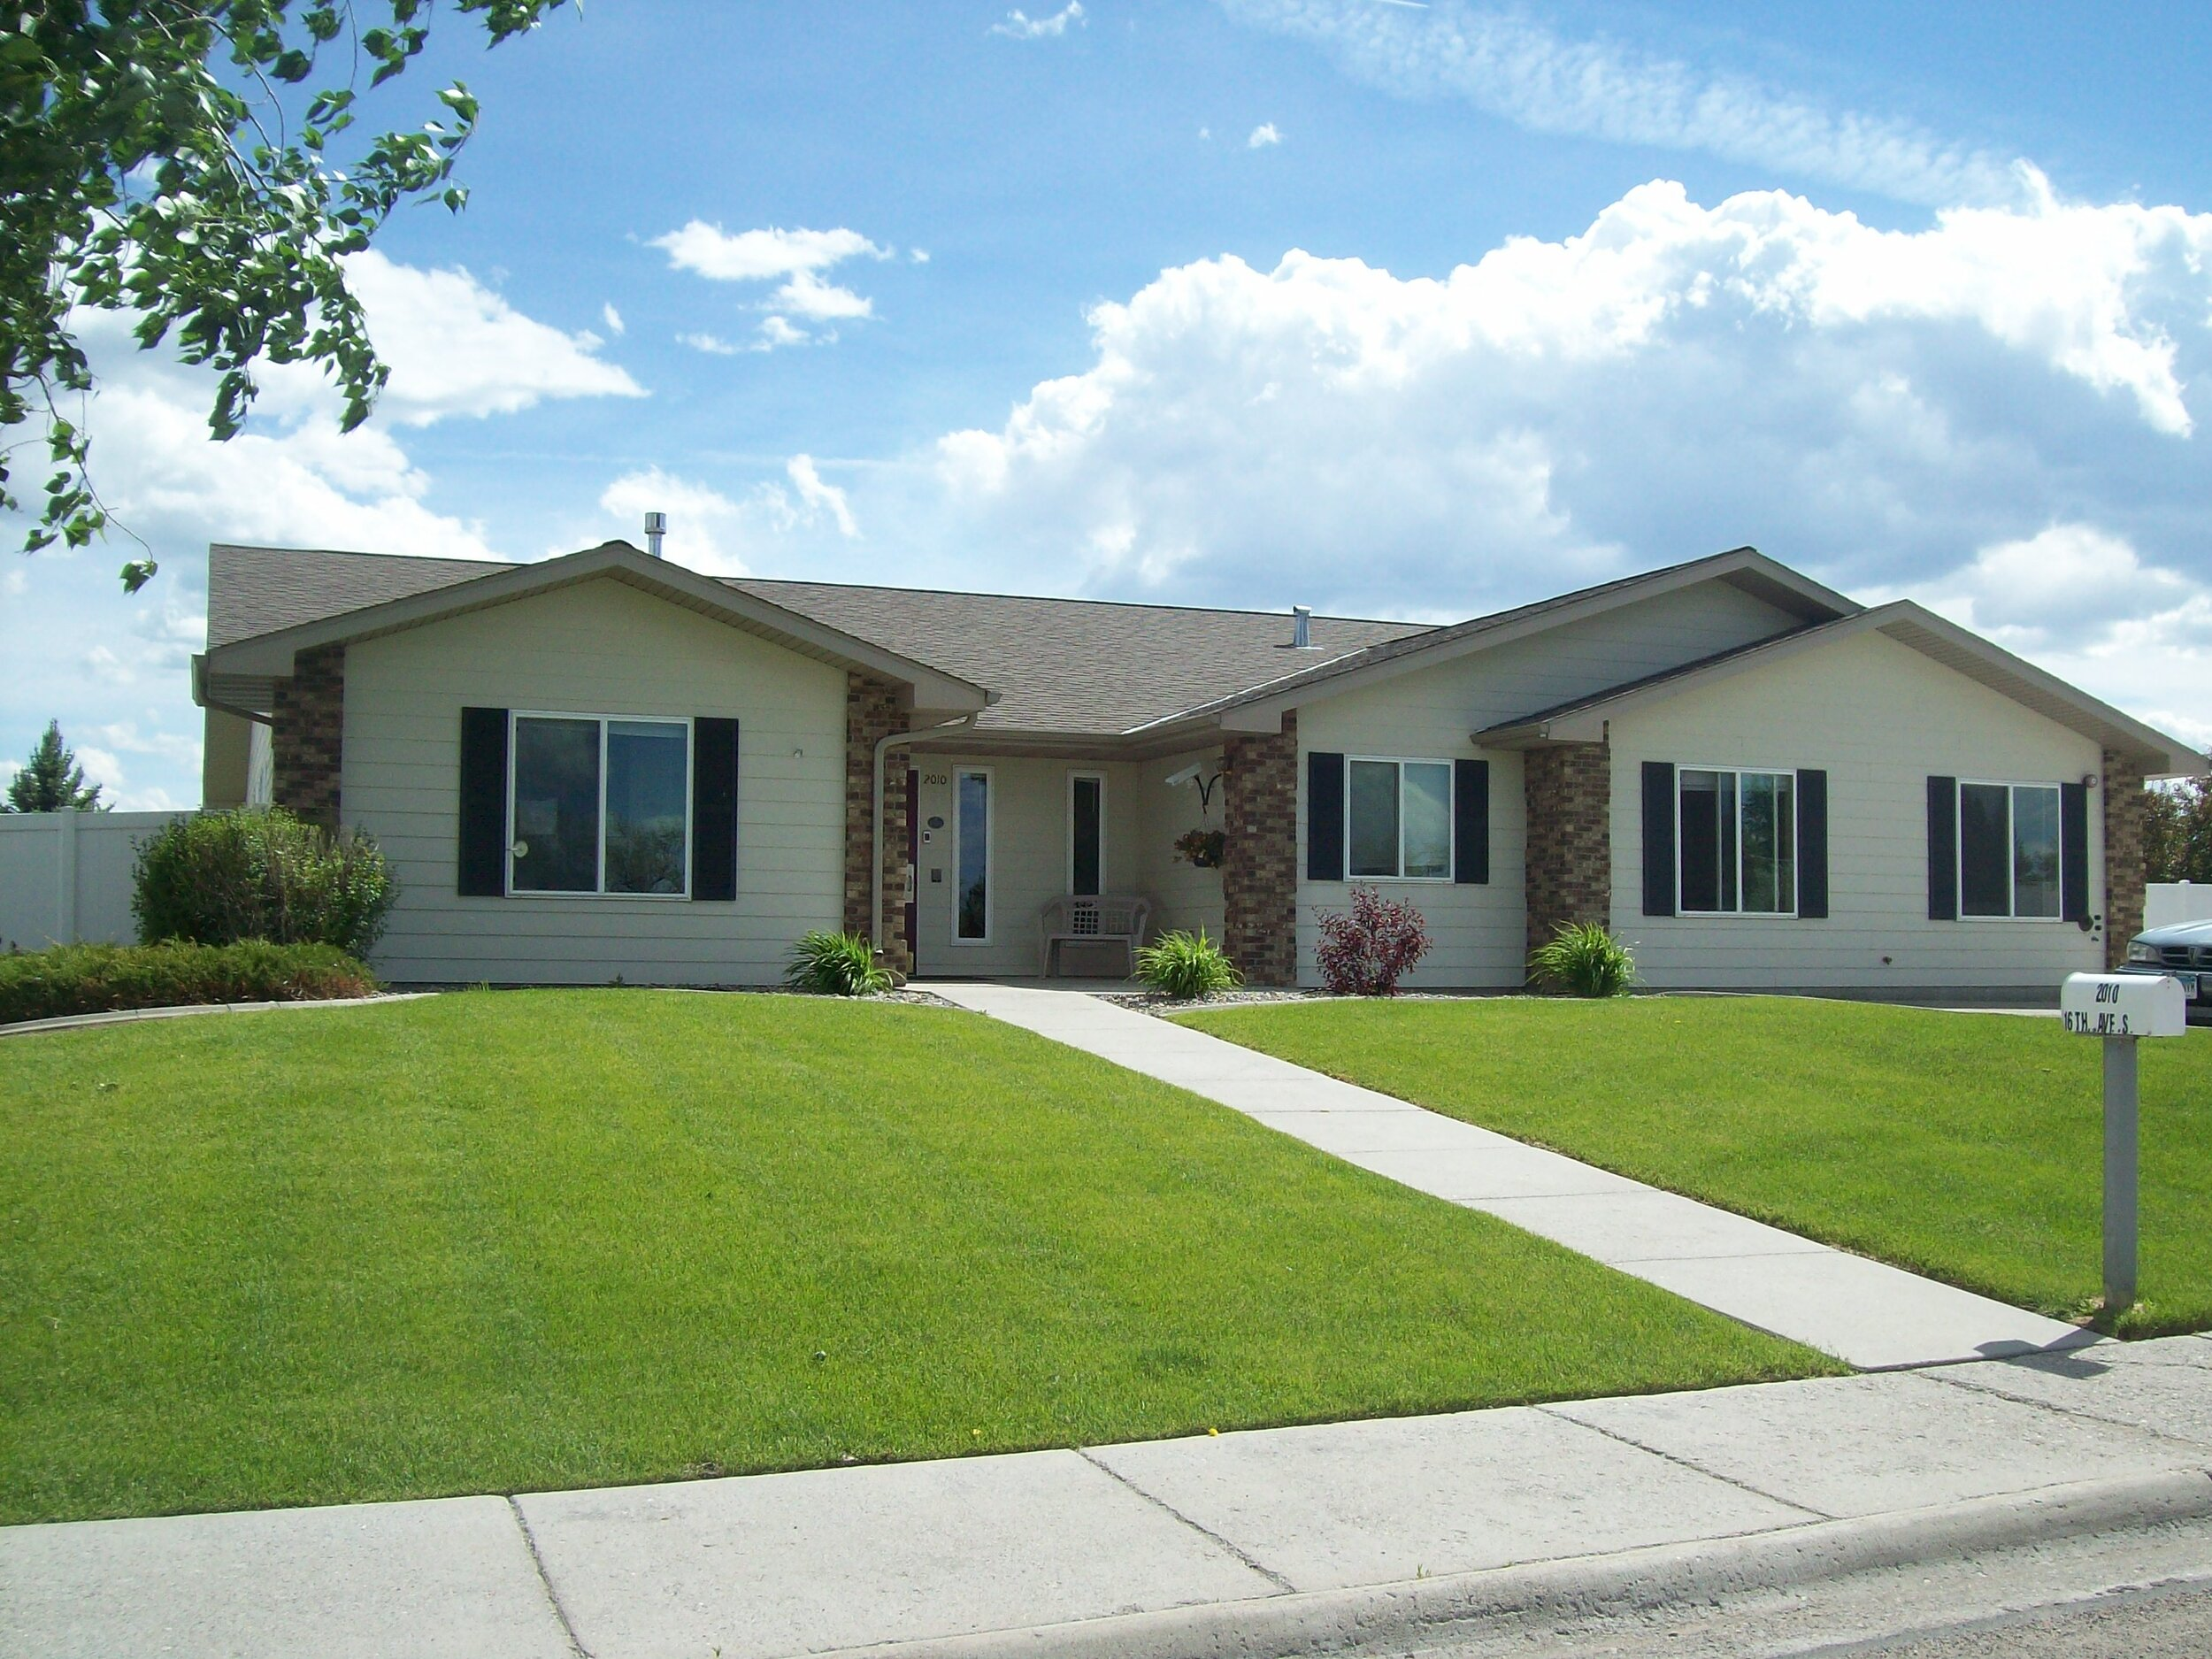 2020 16th Ave South Great Falls, MT 59405